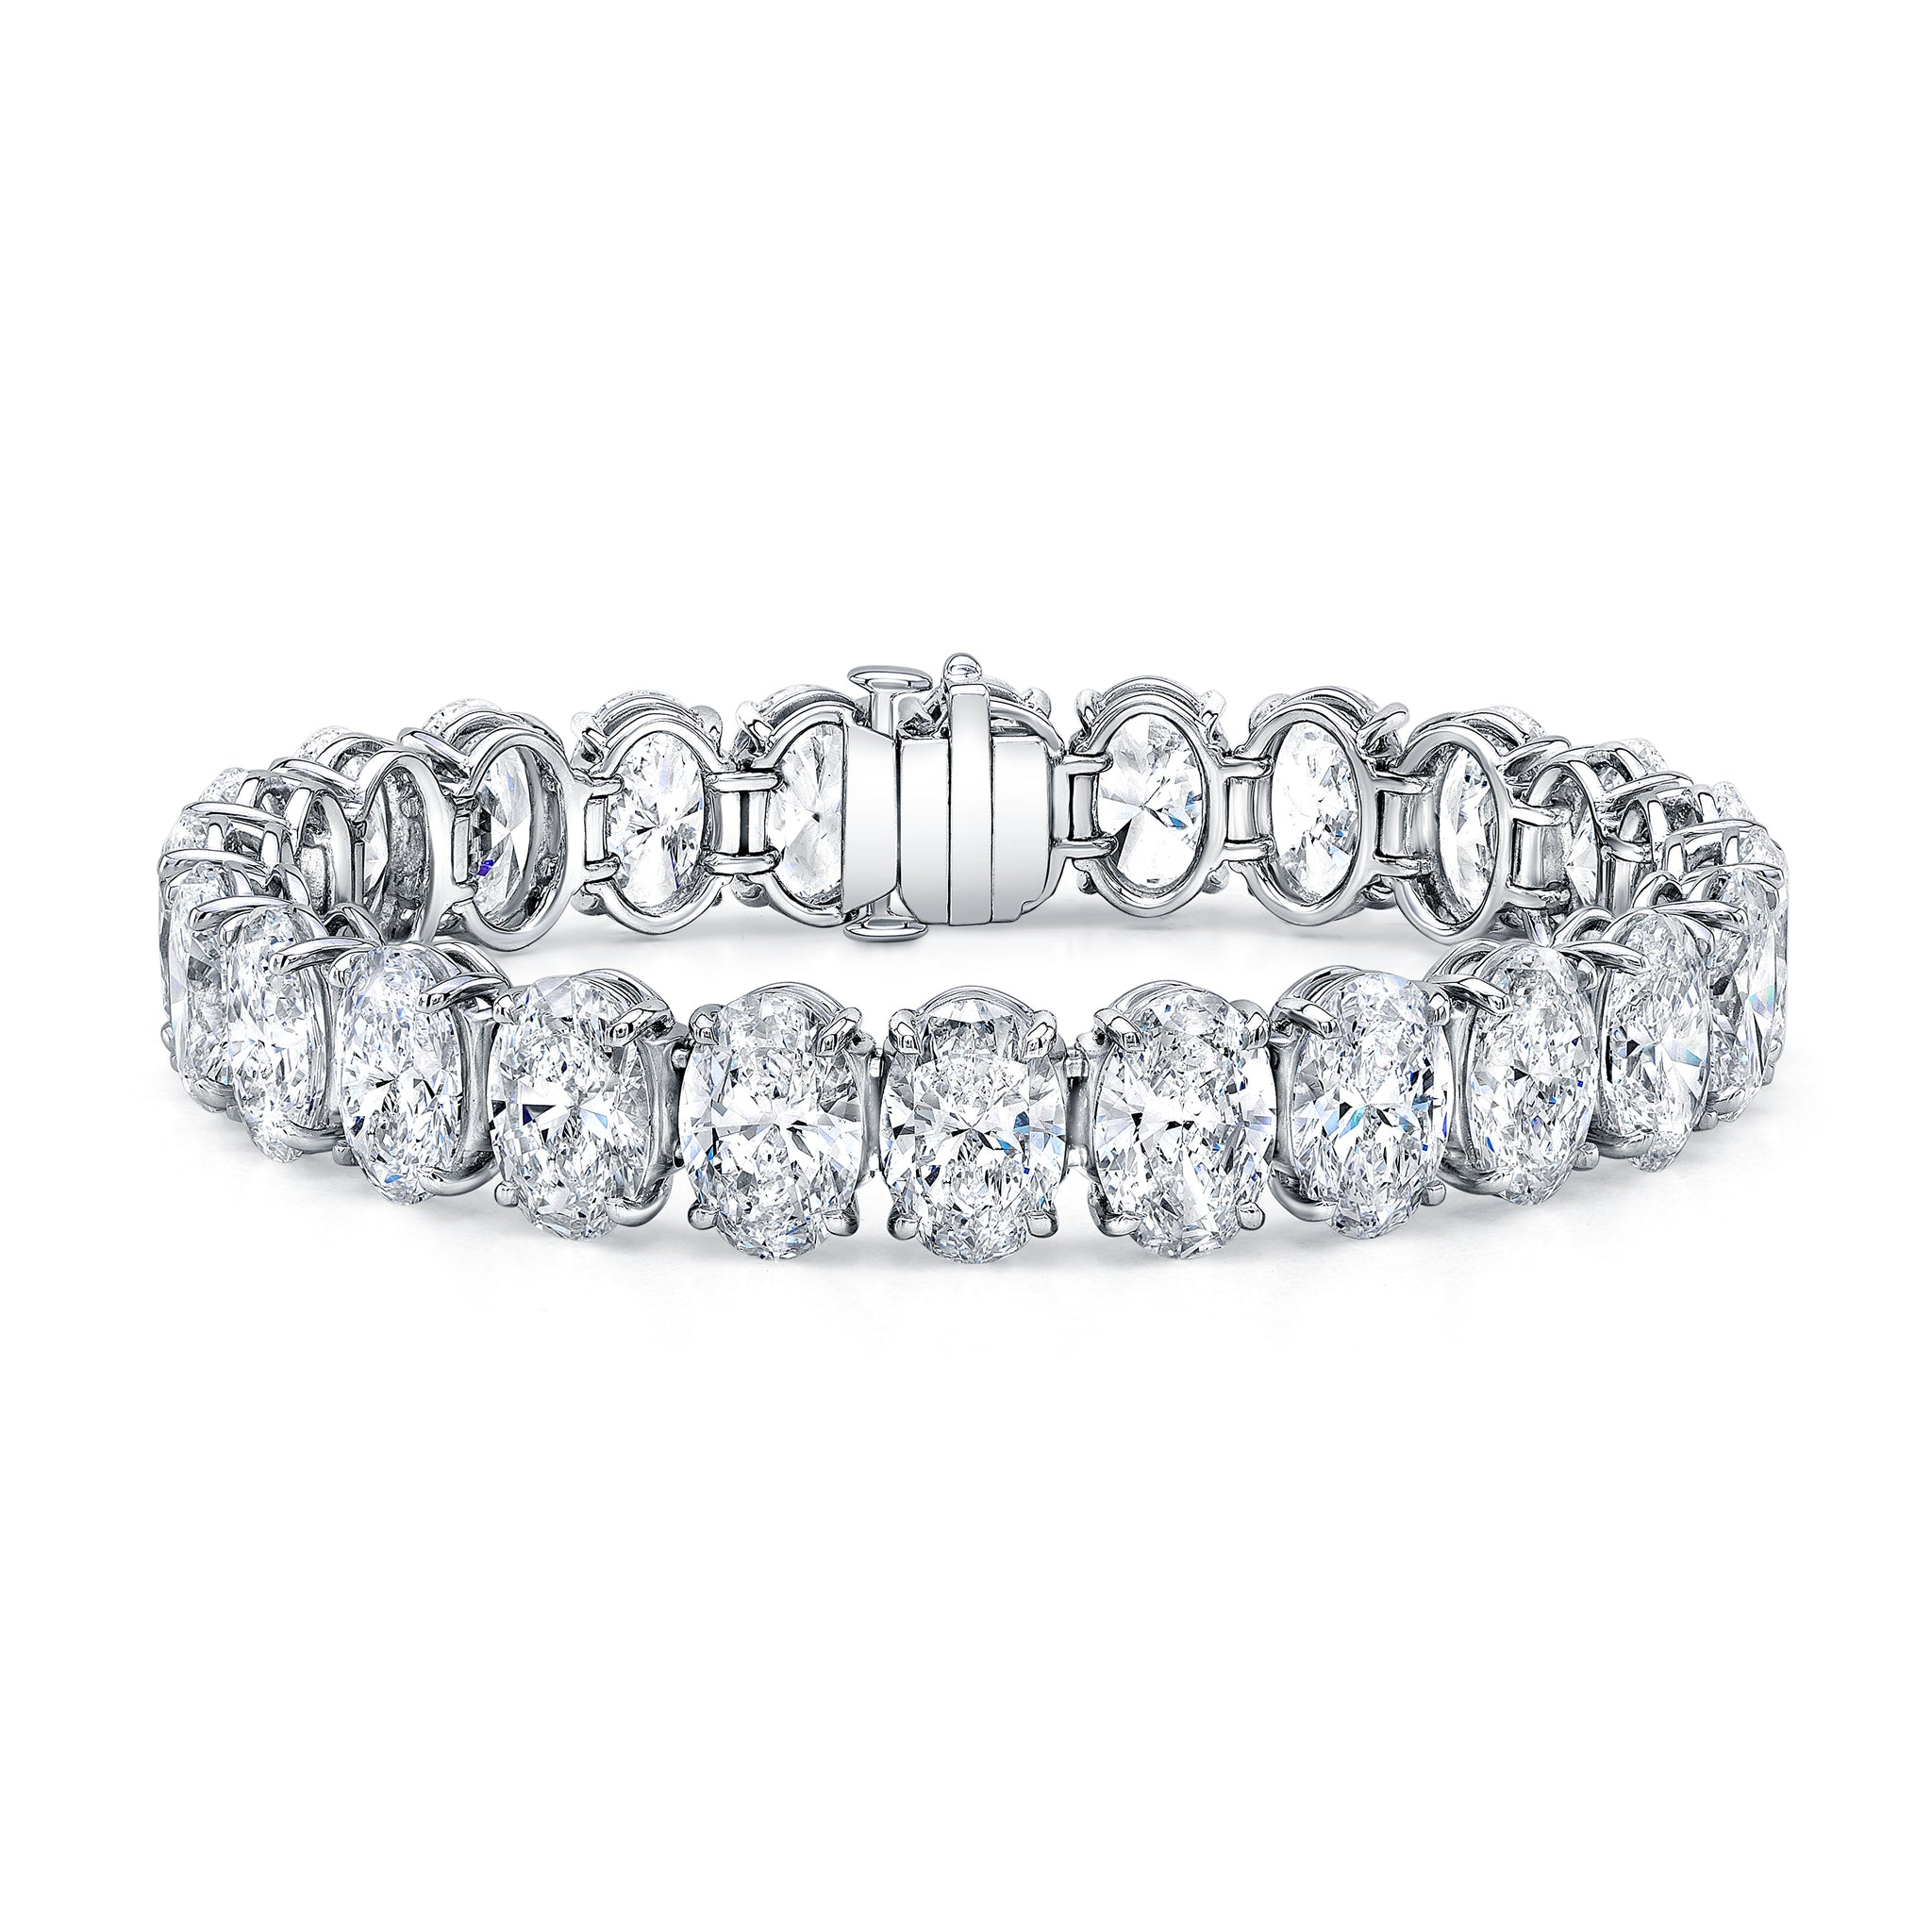 Oval-Cut Diamond Bracelet